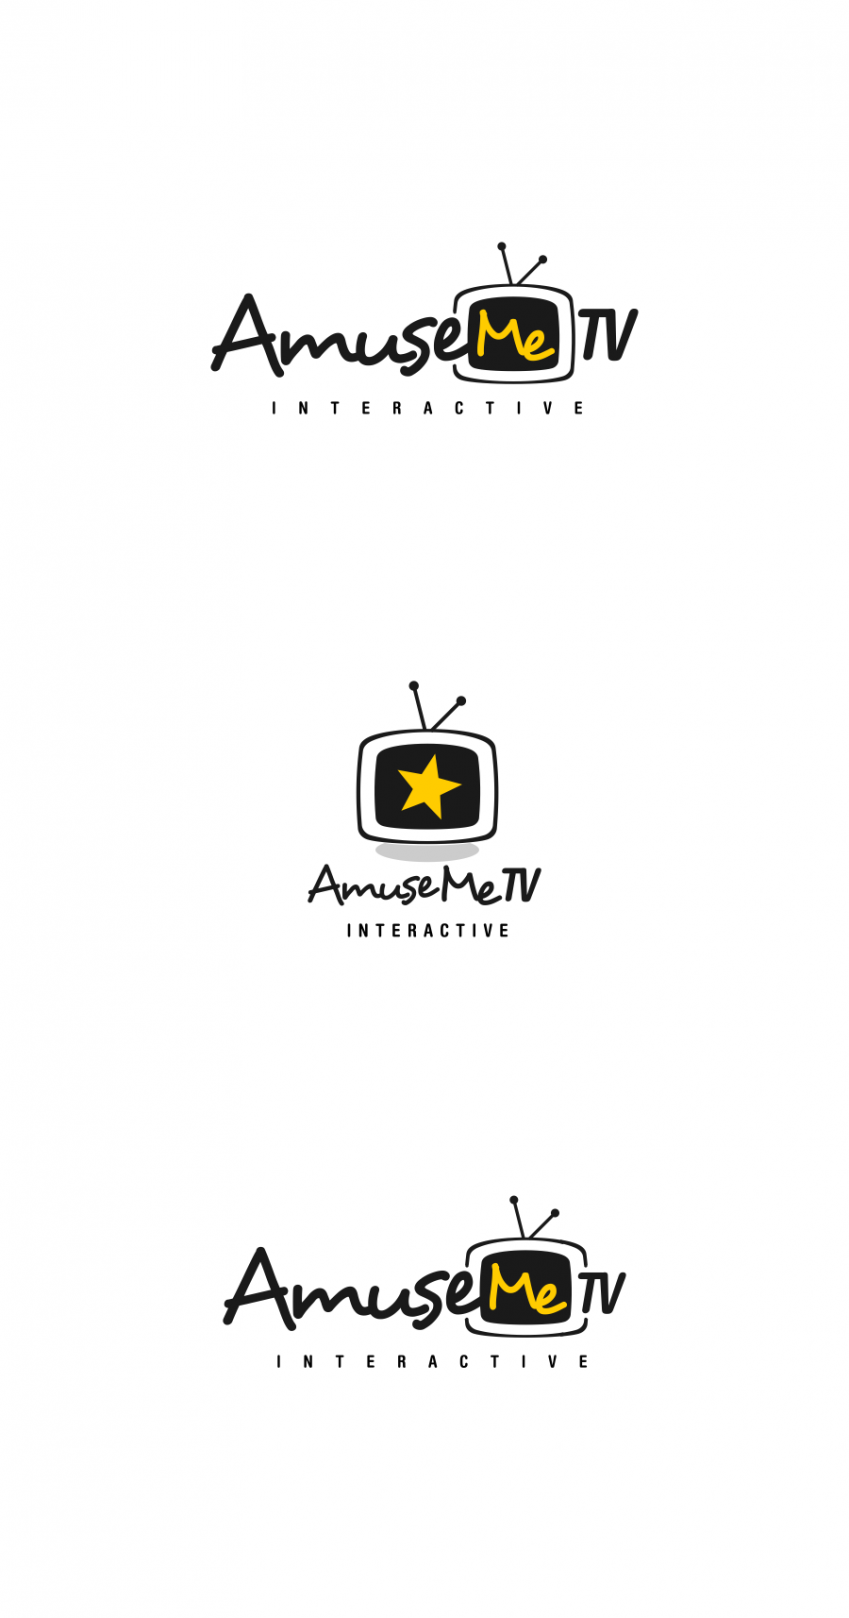 Amuse Me TV - 02 variant 2